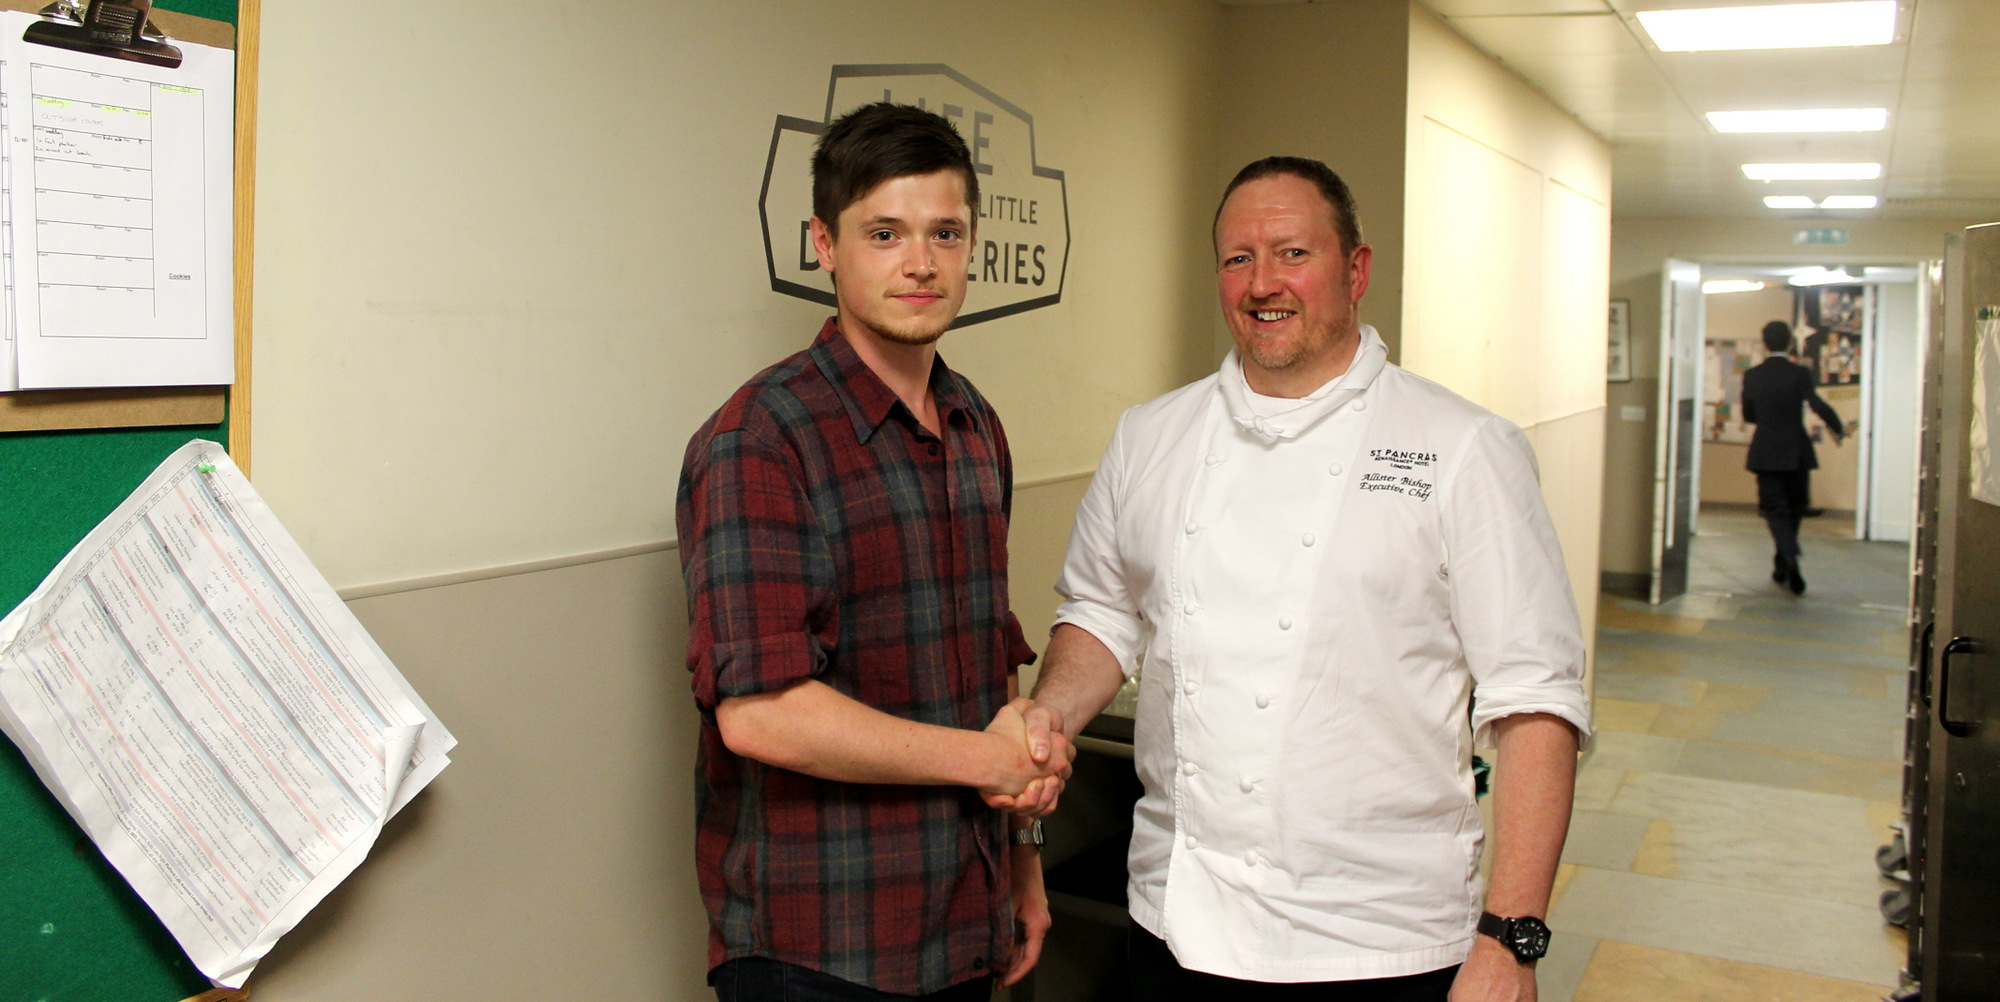 the stagiaire with Allister Bishop, then the executive chef of the hotel